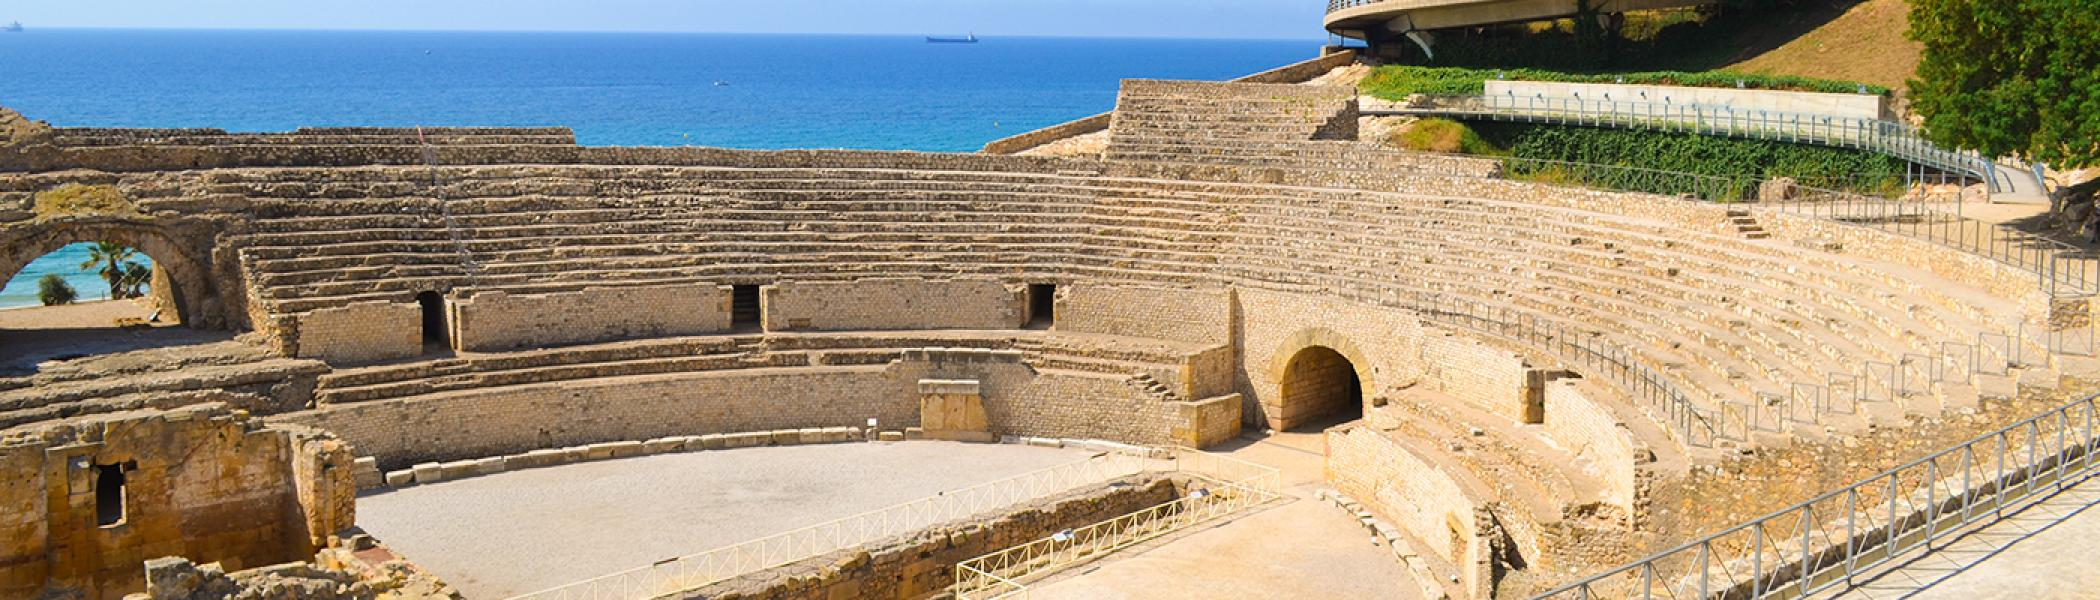 coliseum at noon beside the sea